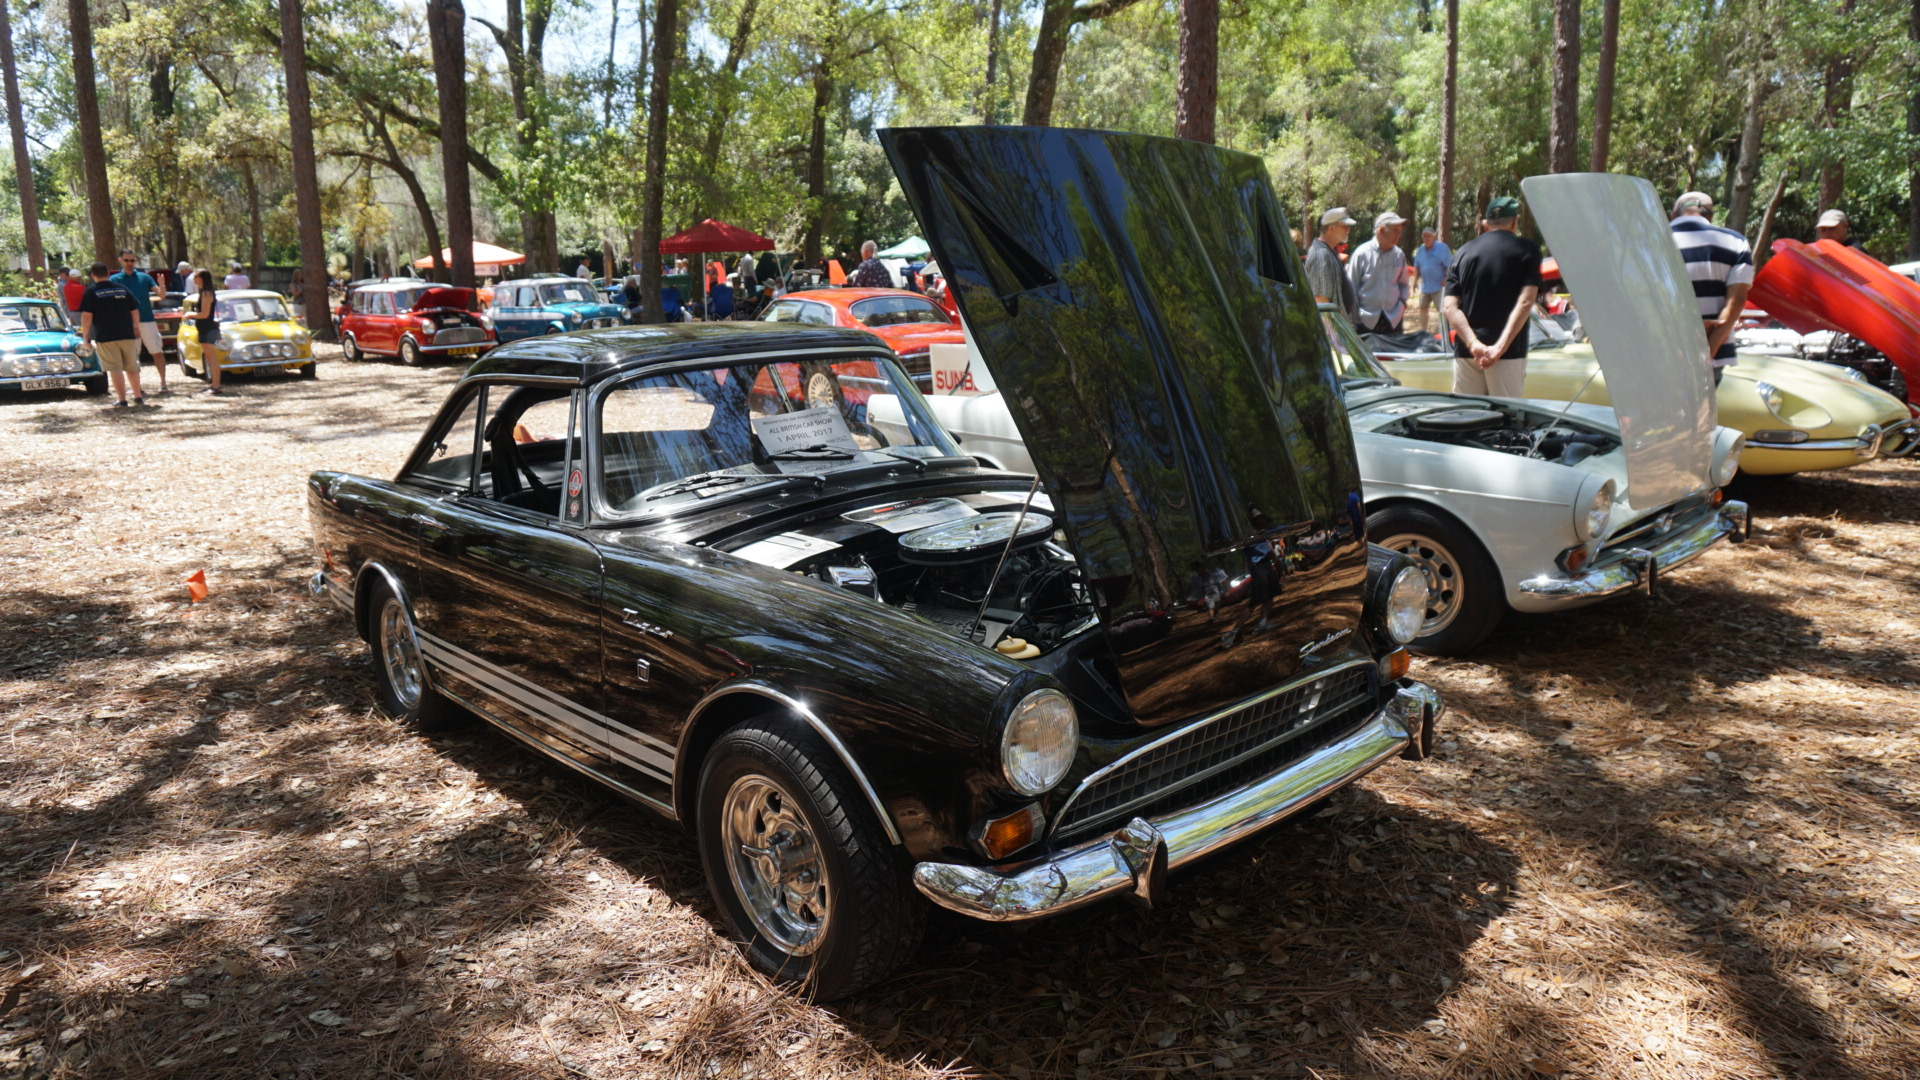 2017 04 british car show mead gardens 23 florida hikes